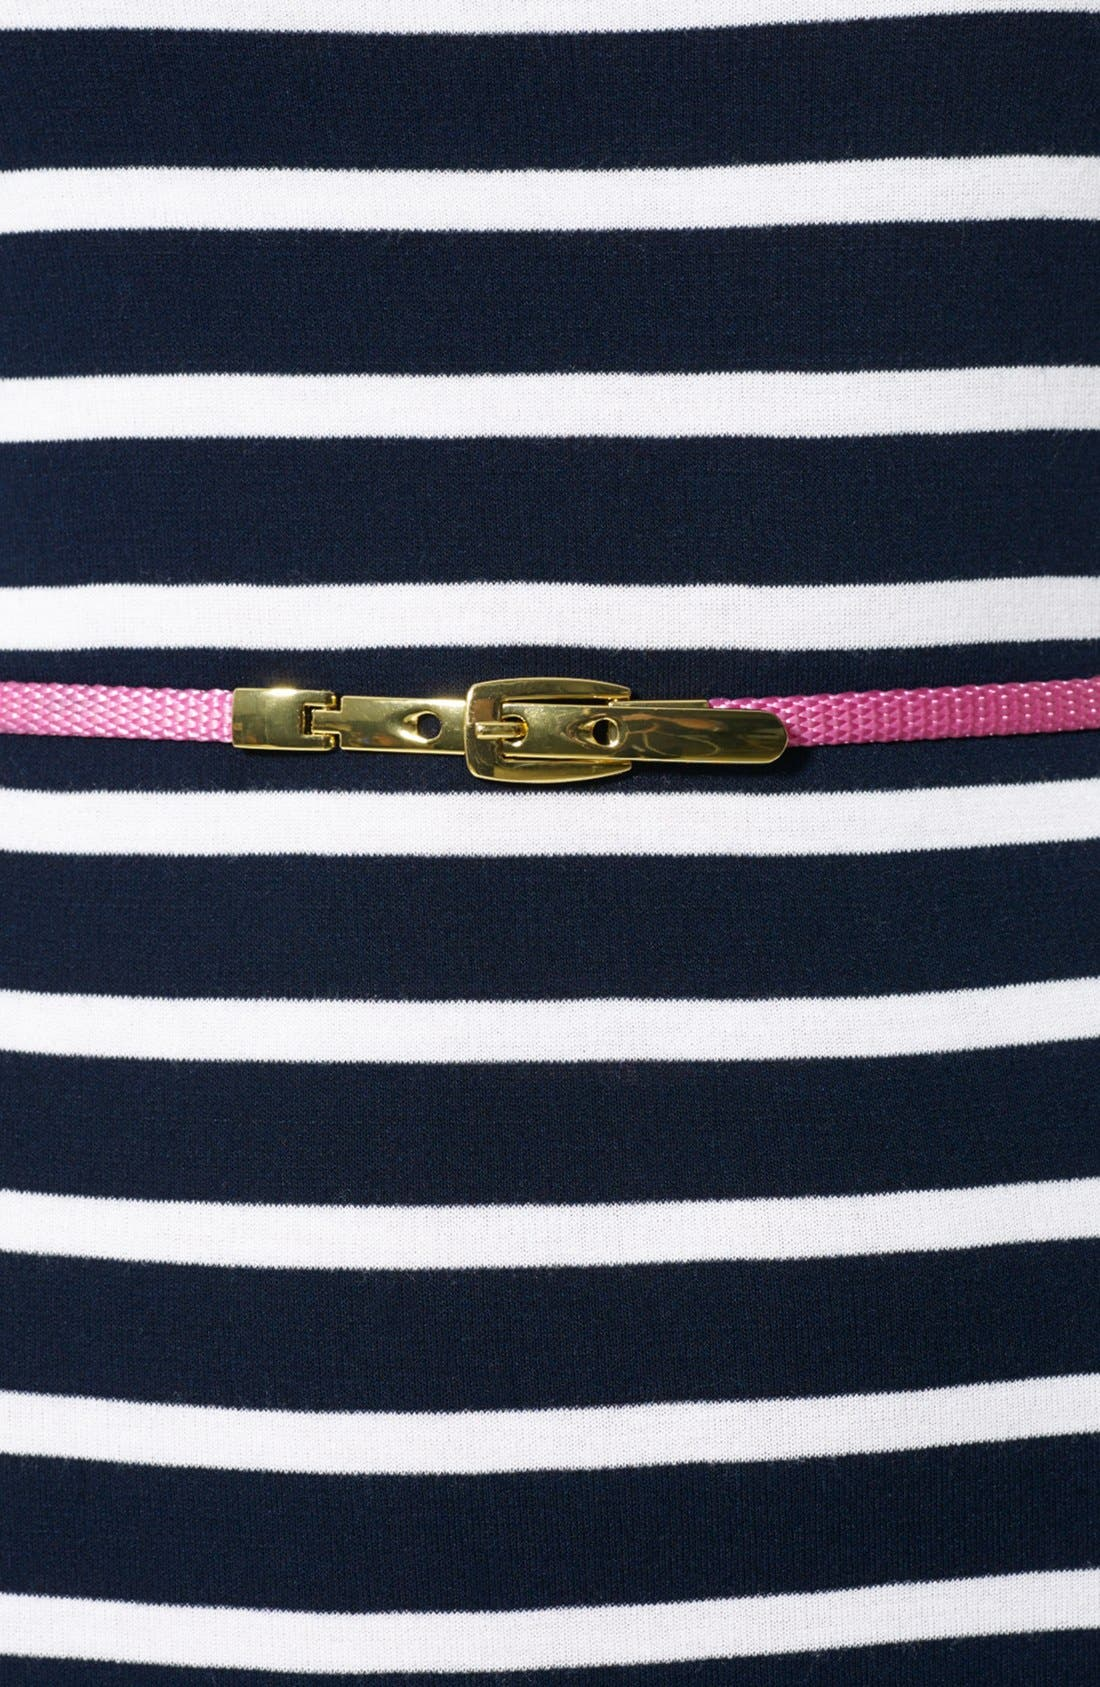 Alternate Image 3  - Lauren Ralph Lauren Stripe Knit Dress (Petite)